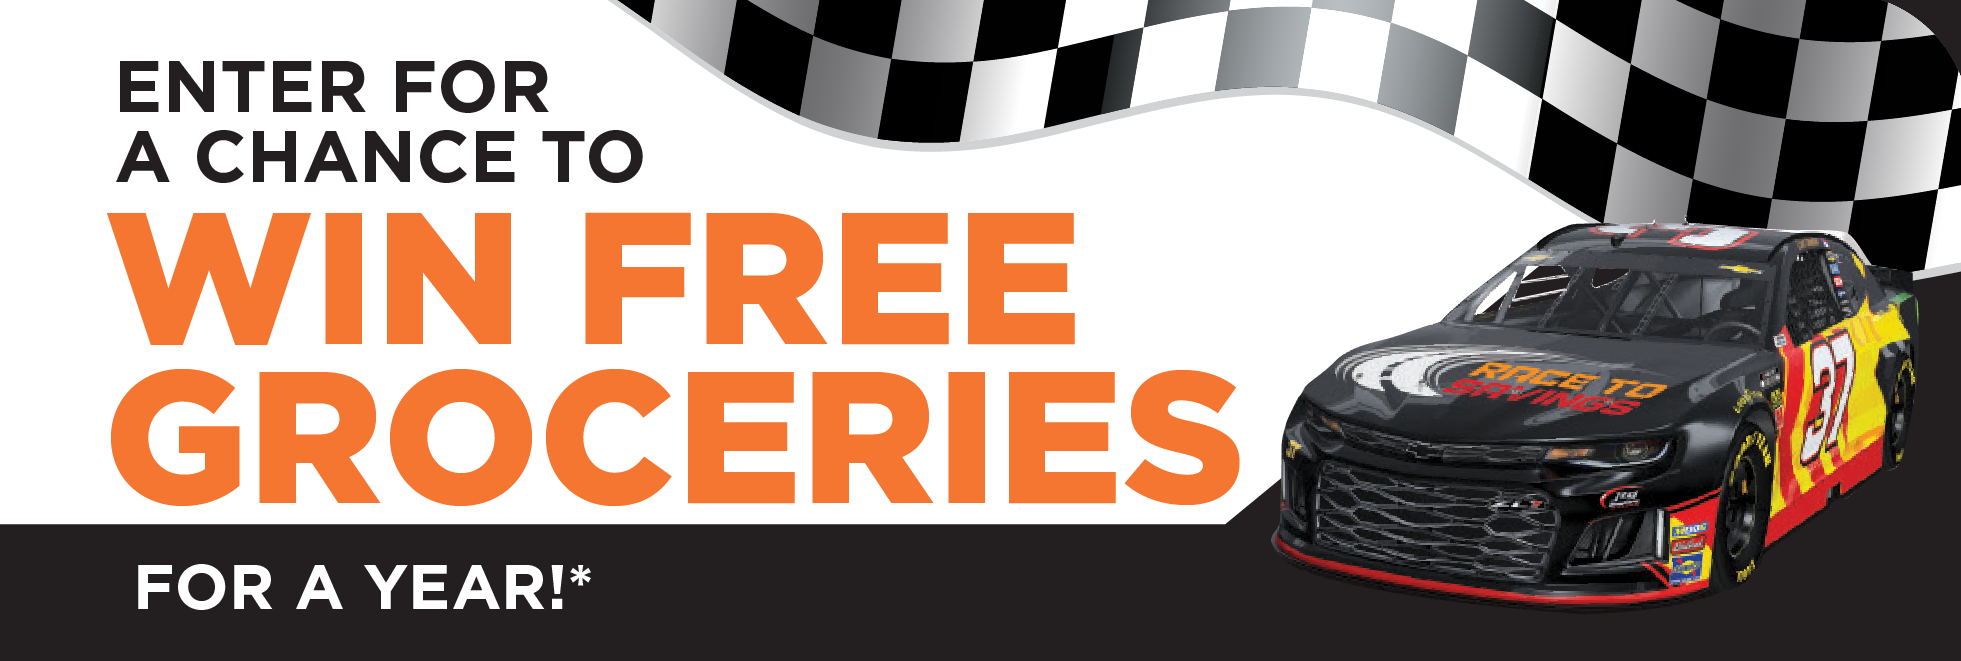 Nascar Sweepstakes Enter for a Chance to win FREE Groceries